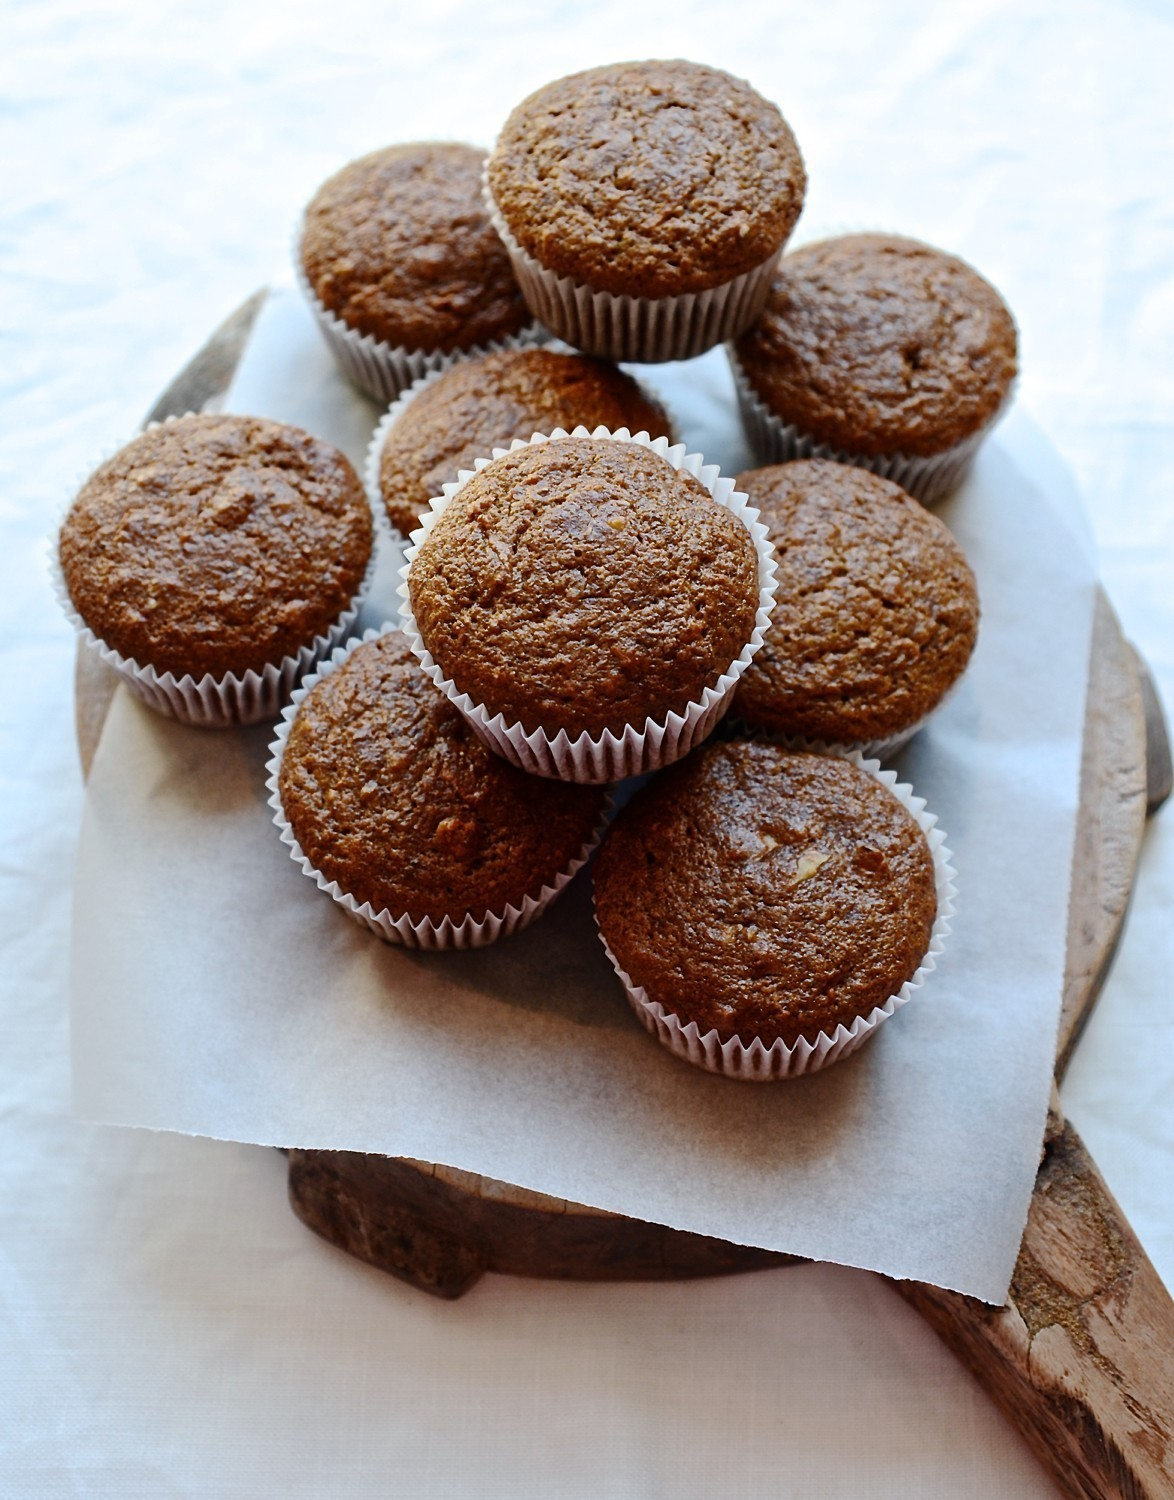 Carrot and apple bran muffins